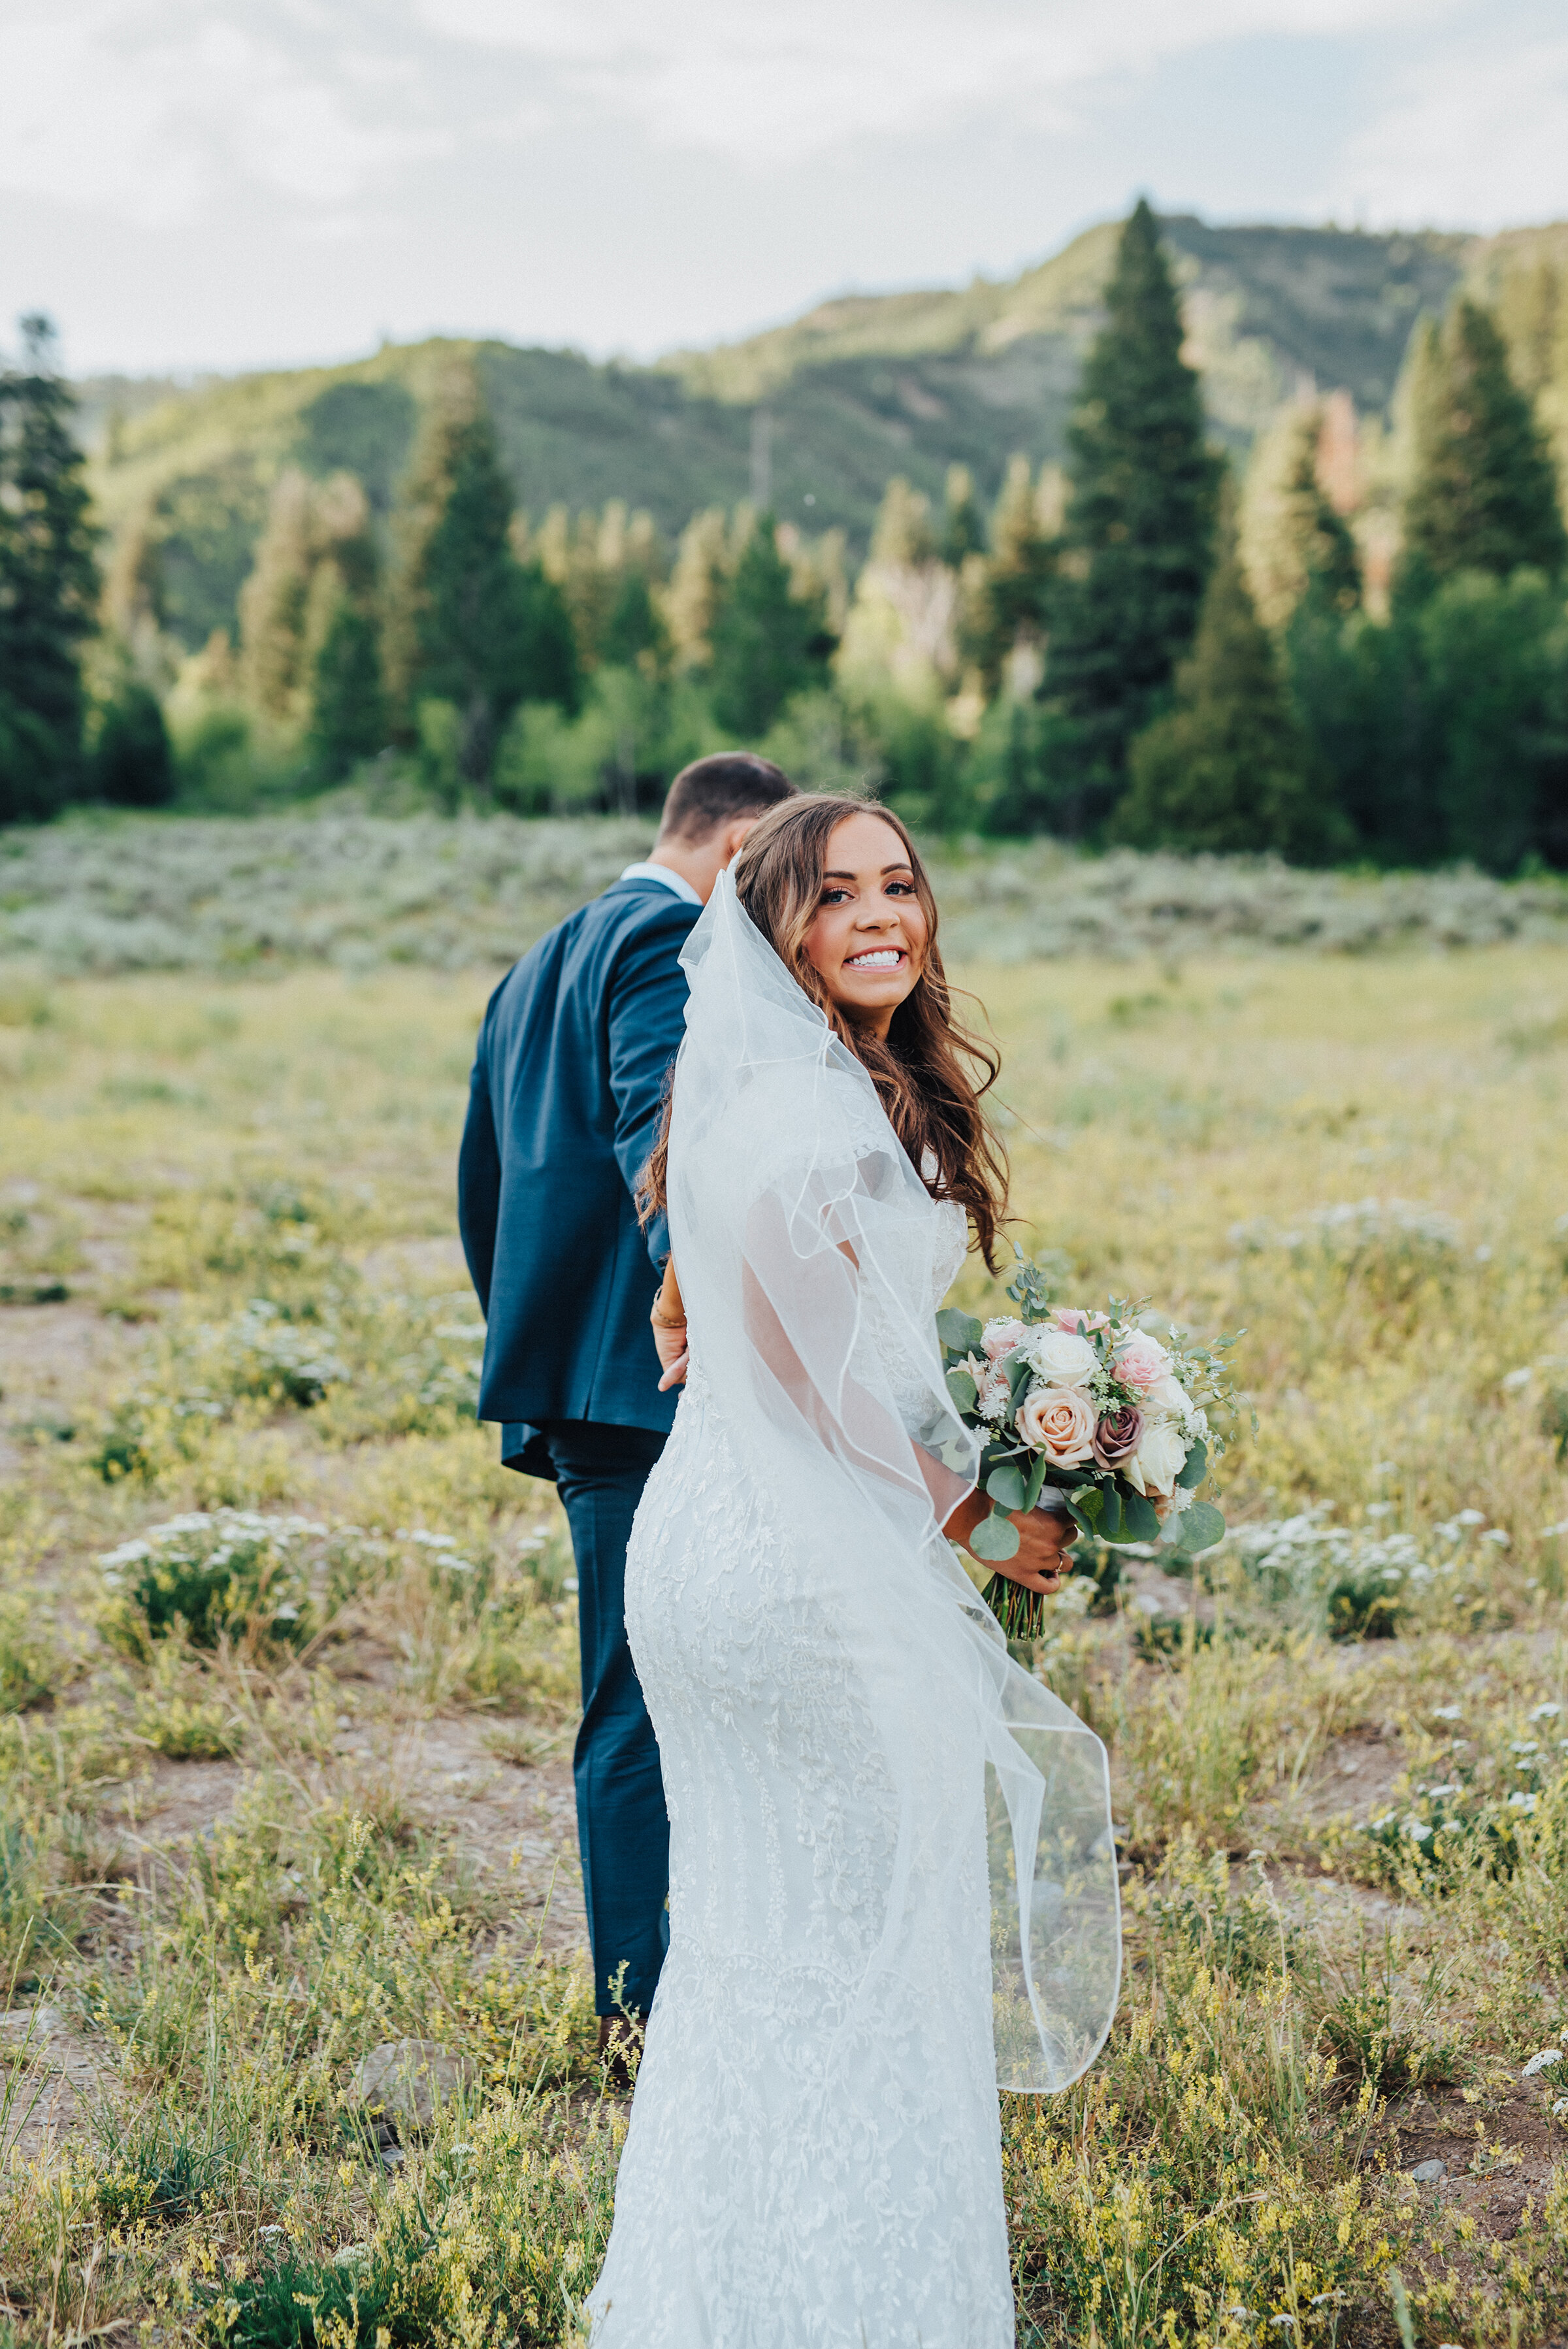 A smiling bride looks behind her as her husband gently tugs her forward towards the beautiful mountainside in American Fork Canyon. Light pink bouquet navy suit strolling in the grass evergreen trees husband and wife holding hands mountains and evergreen trees #husbandandwife #younglove #tibbleforkreservoir #utahwedding #americanforkcanyon #coupleshoot #formals #weddingphotography #couplesgoals #couplephotography #weddingphotographer #couplesphotography #groom #bride